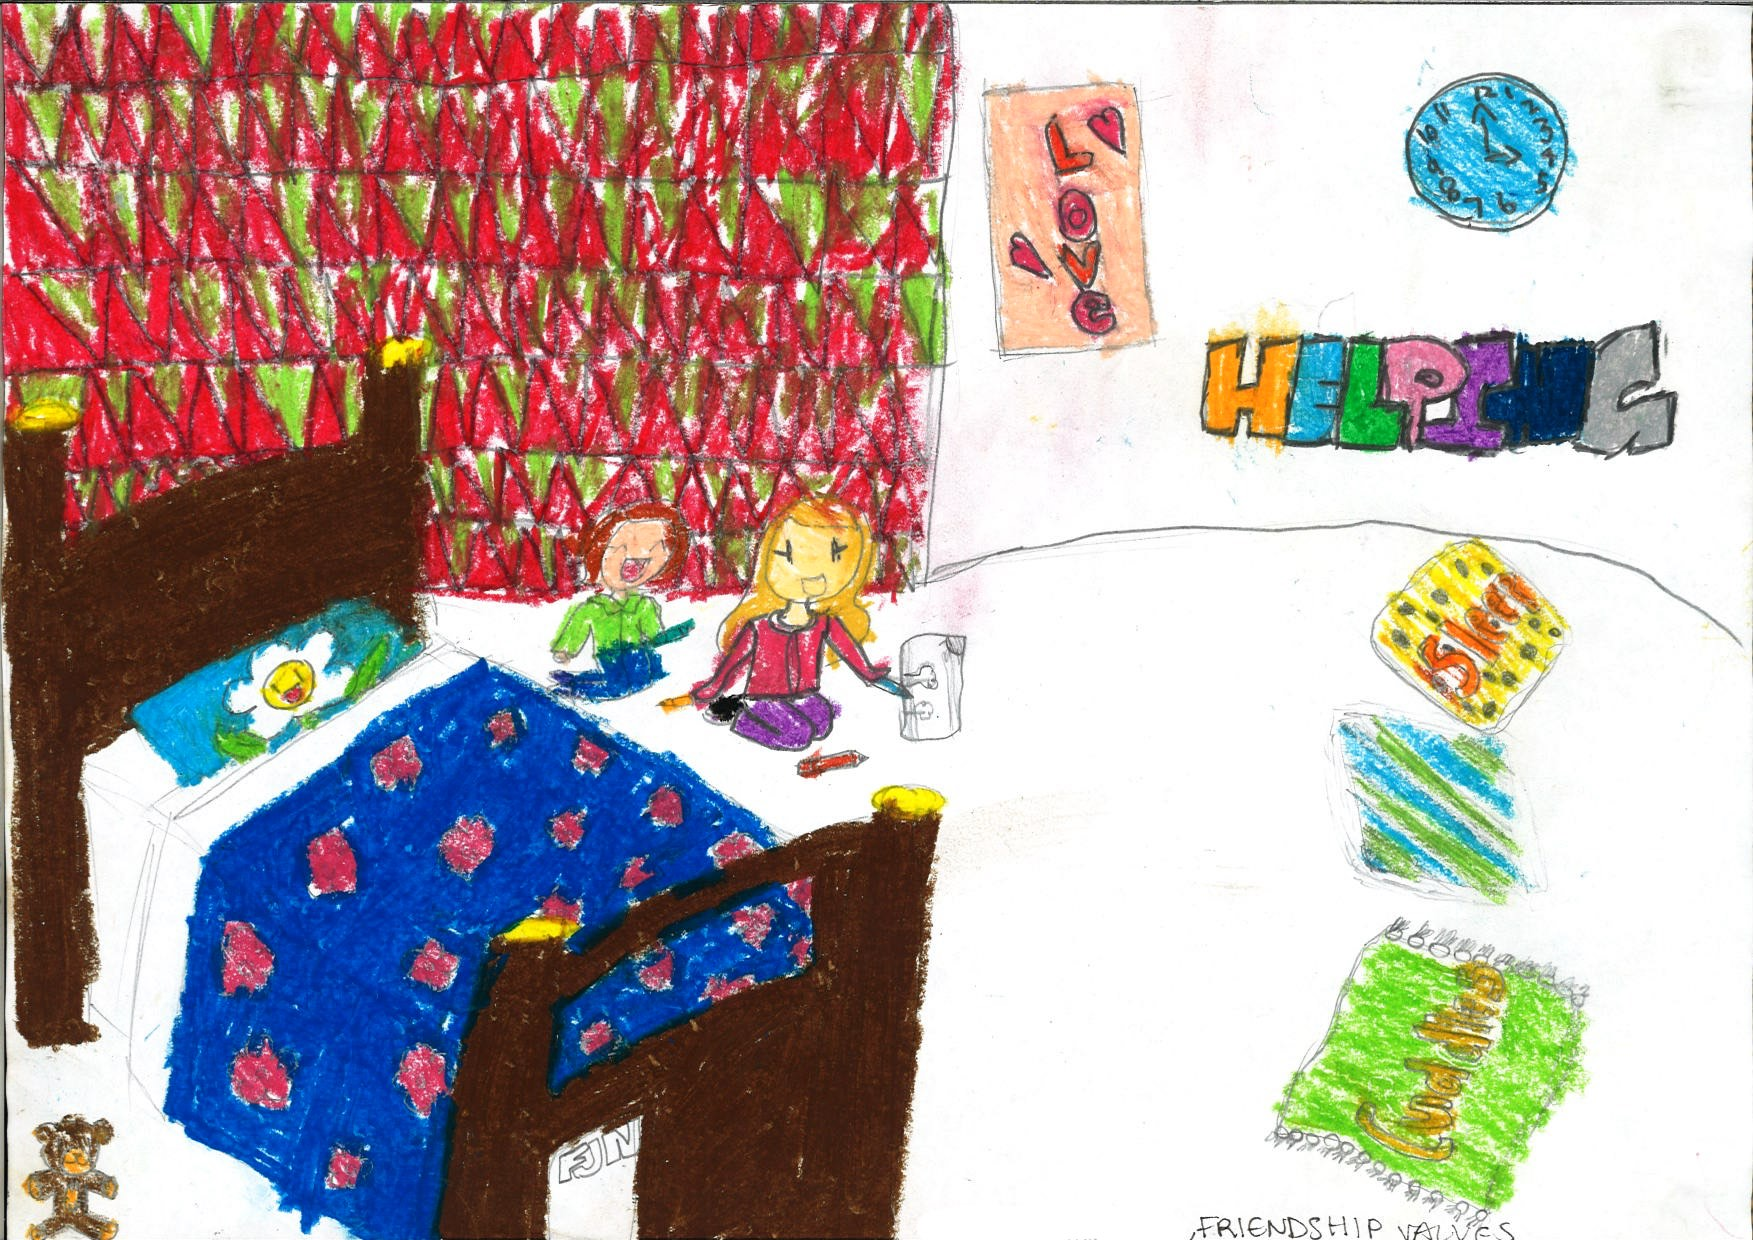 """Using oil pastels, the two children literally """"spell out"""" the multi-dimensional nature of friendship - involving sleep, cuddles, love and being helpful to one another. Perhaps in an act of self-reflection, two girls are also depicted as completing a drawing together within a vibrantly-coloured bedroom. The smiling flower (on the pillowcase), and the teddy bear adds to the warmth of the scene."""